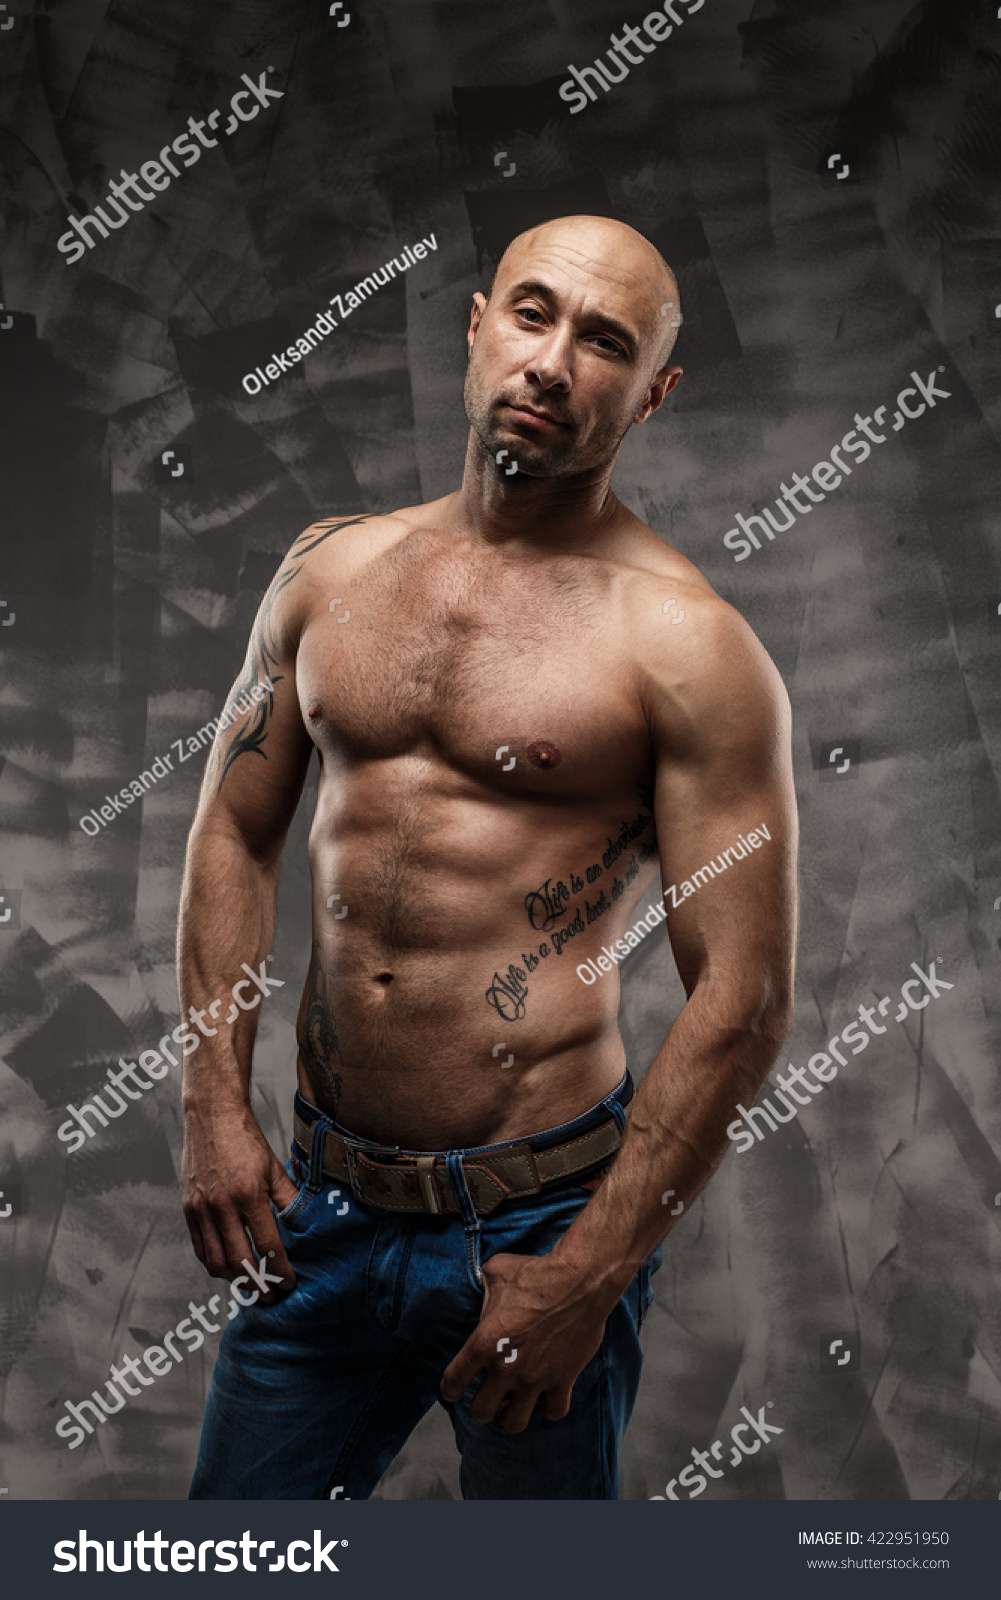 15 Year Boys Bedroom: Shirtless Muscled Fitness Man Cool Looking Stock Photo